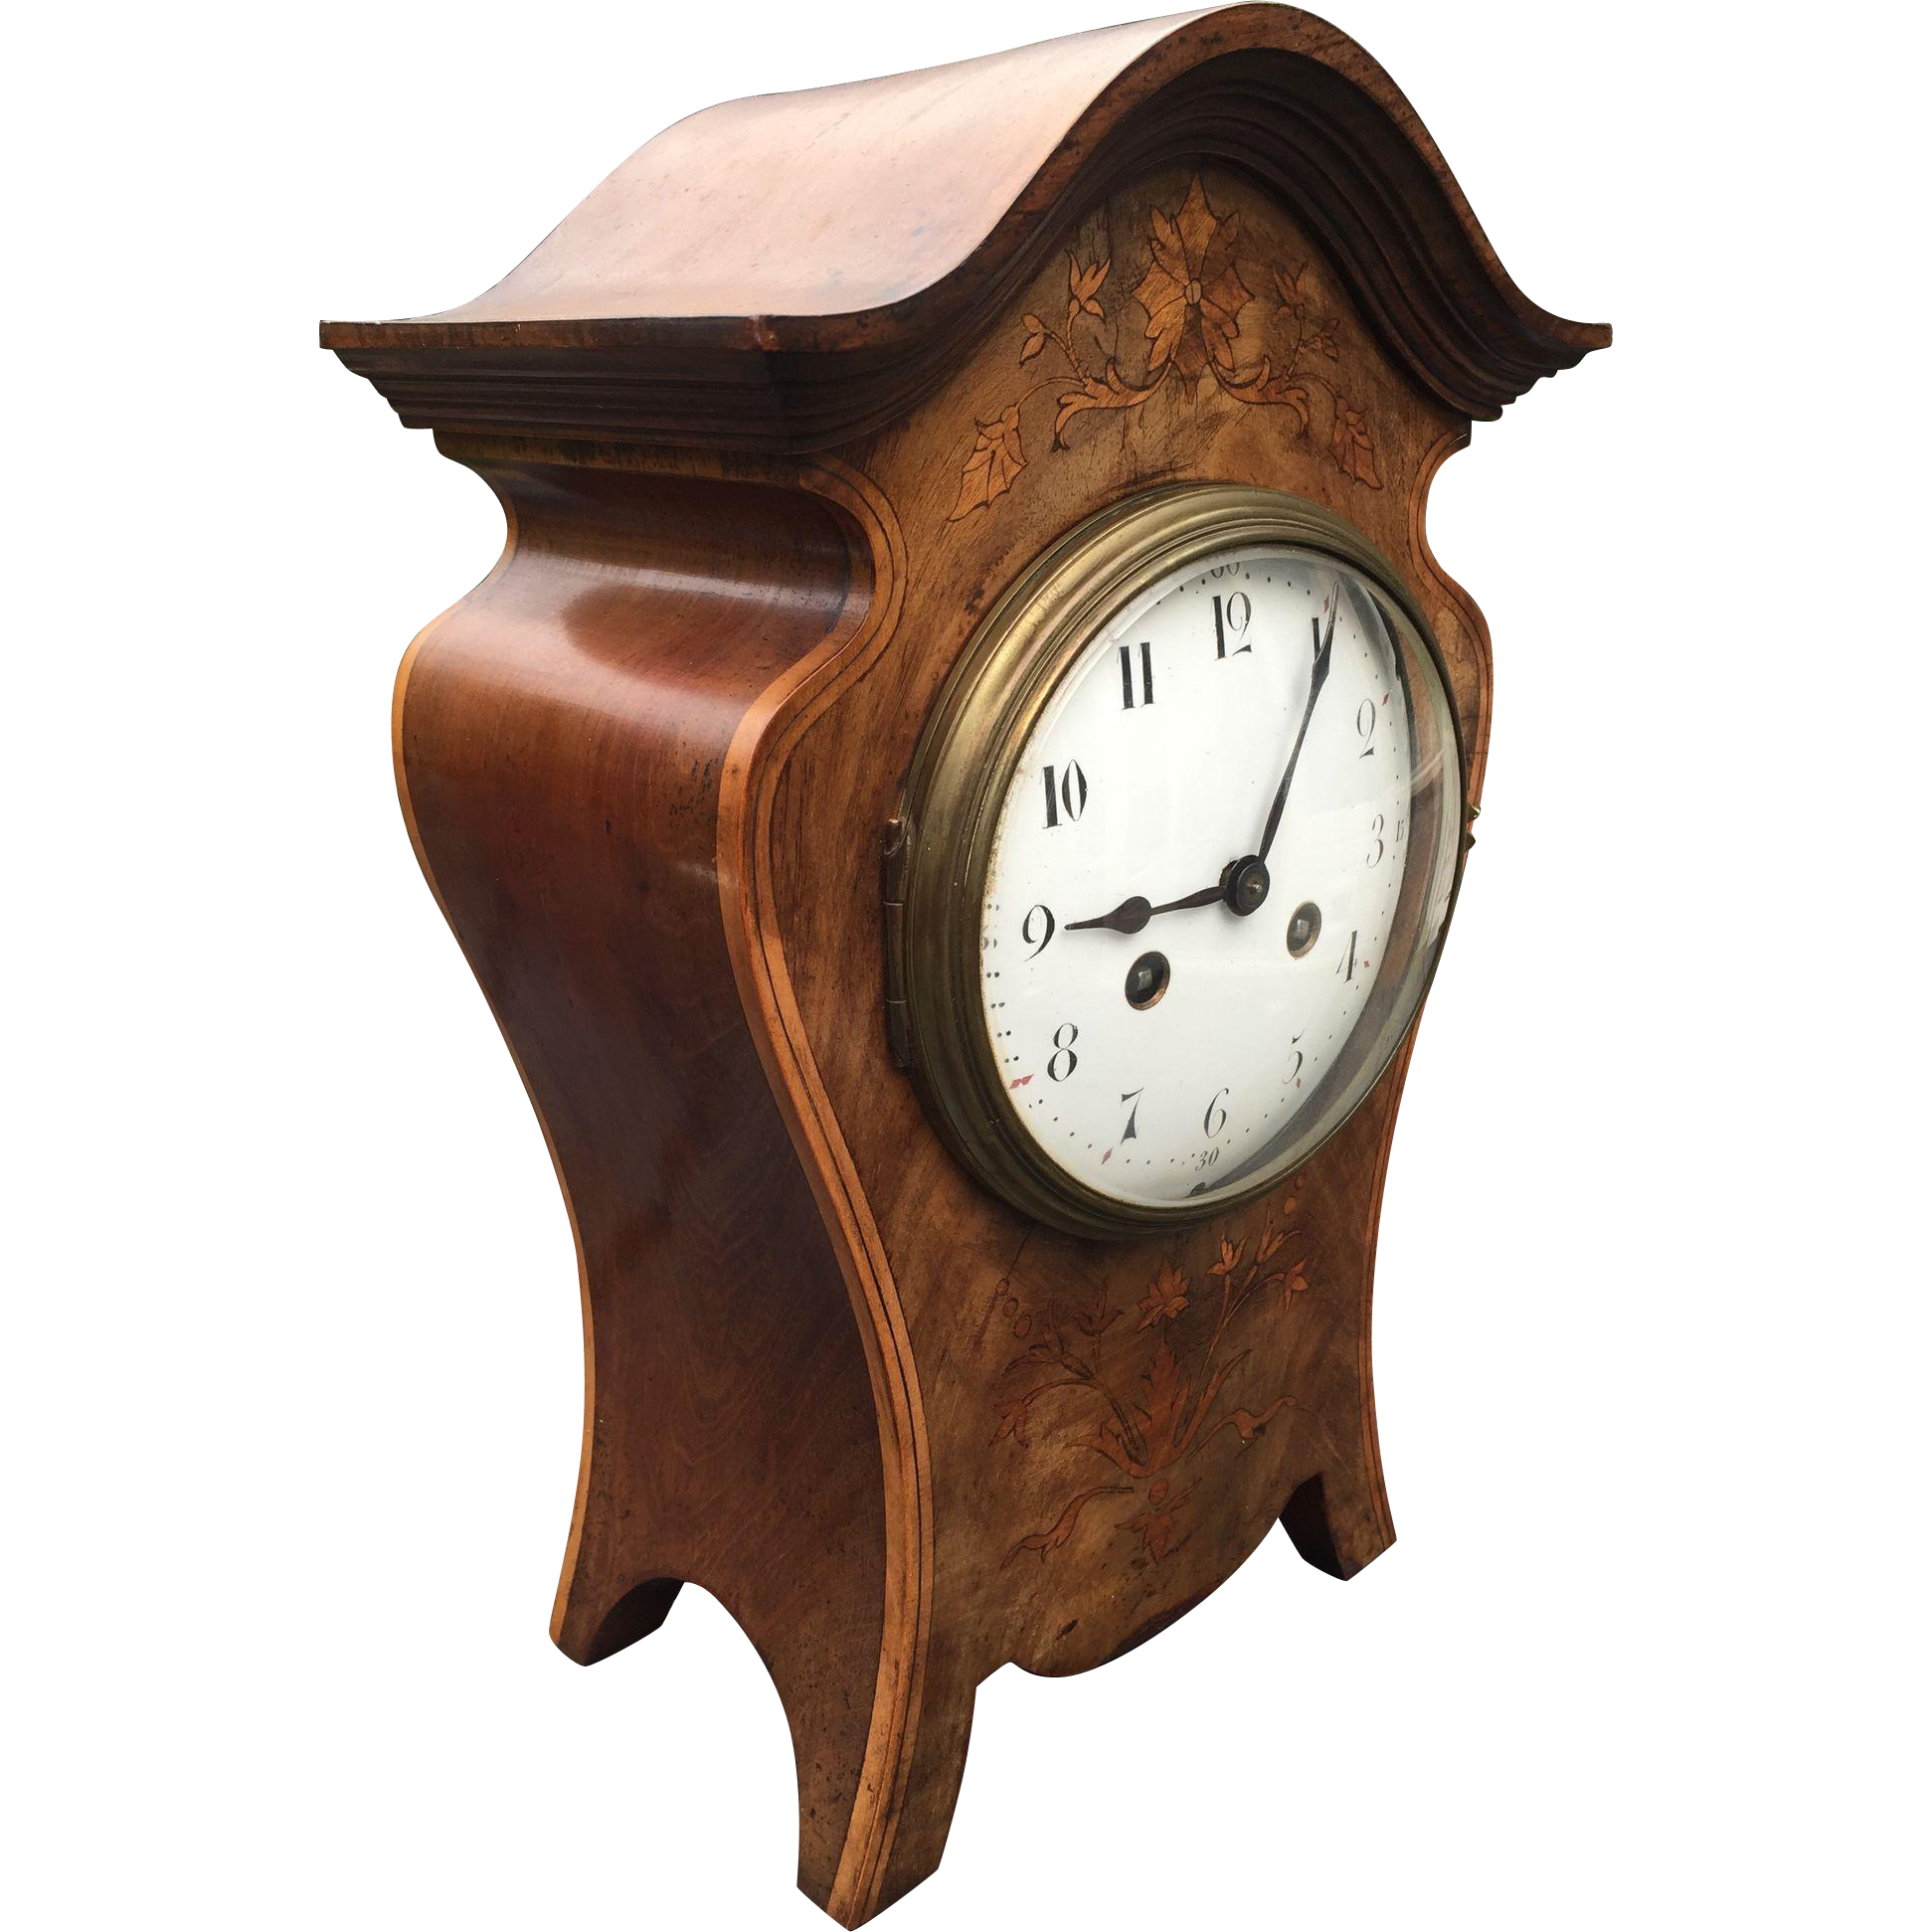 Art Nouveau Walnut Mantel - Bracket Clock with Inlaid Floral Design